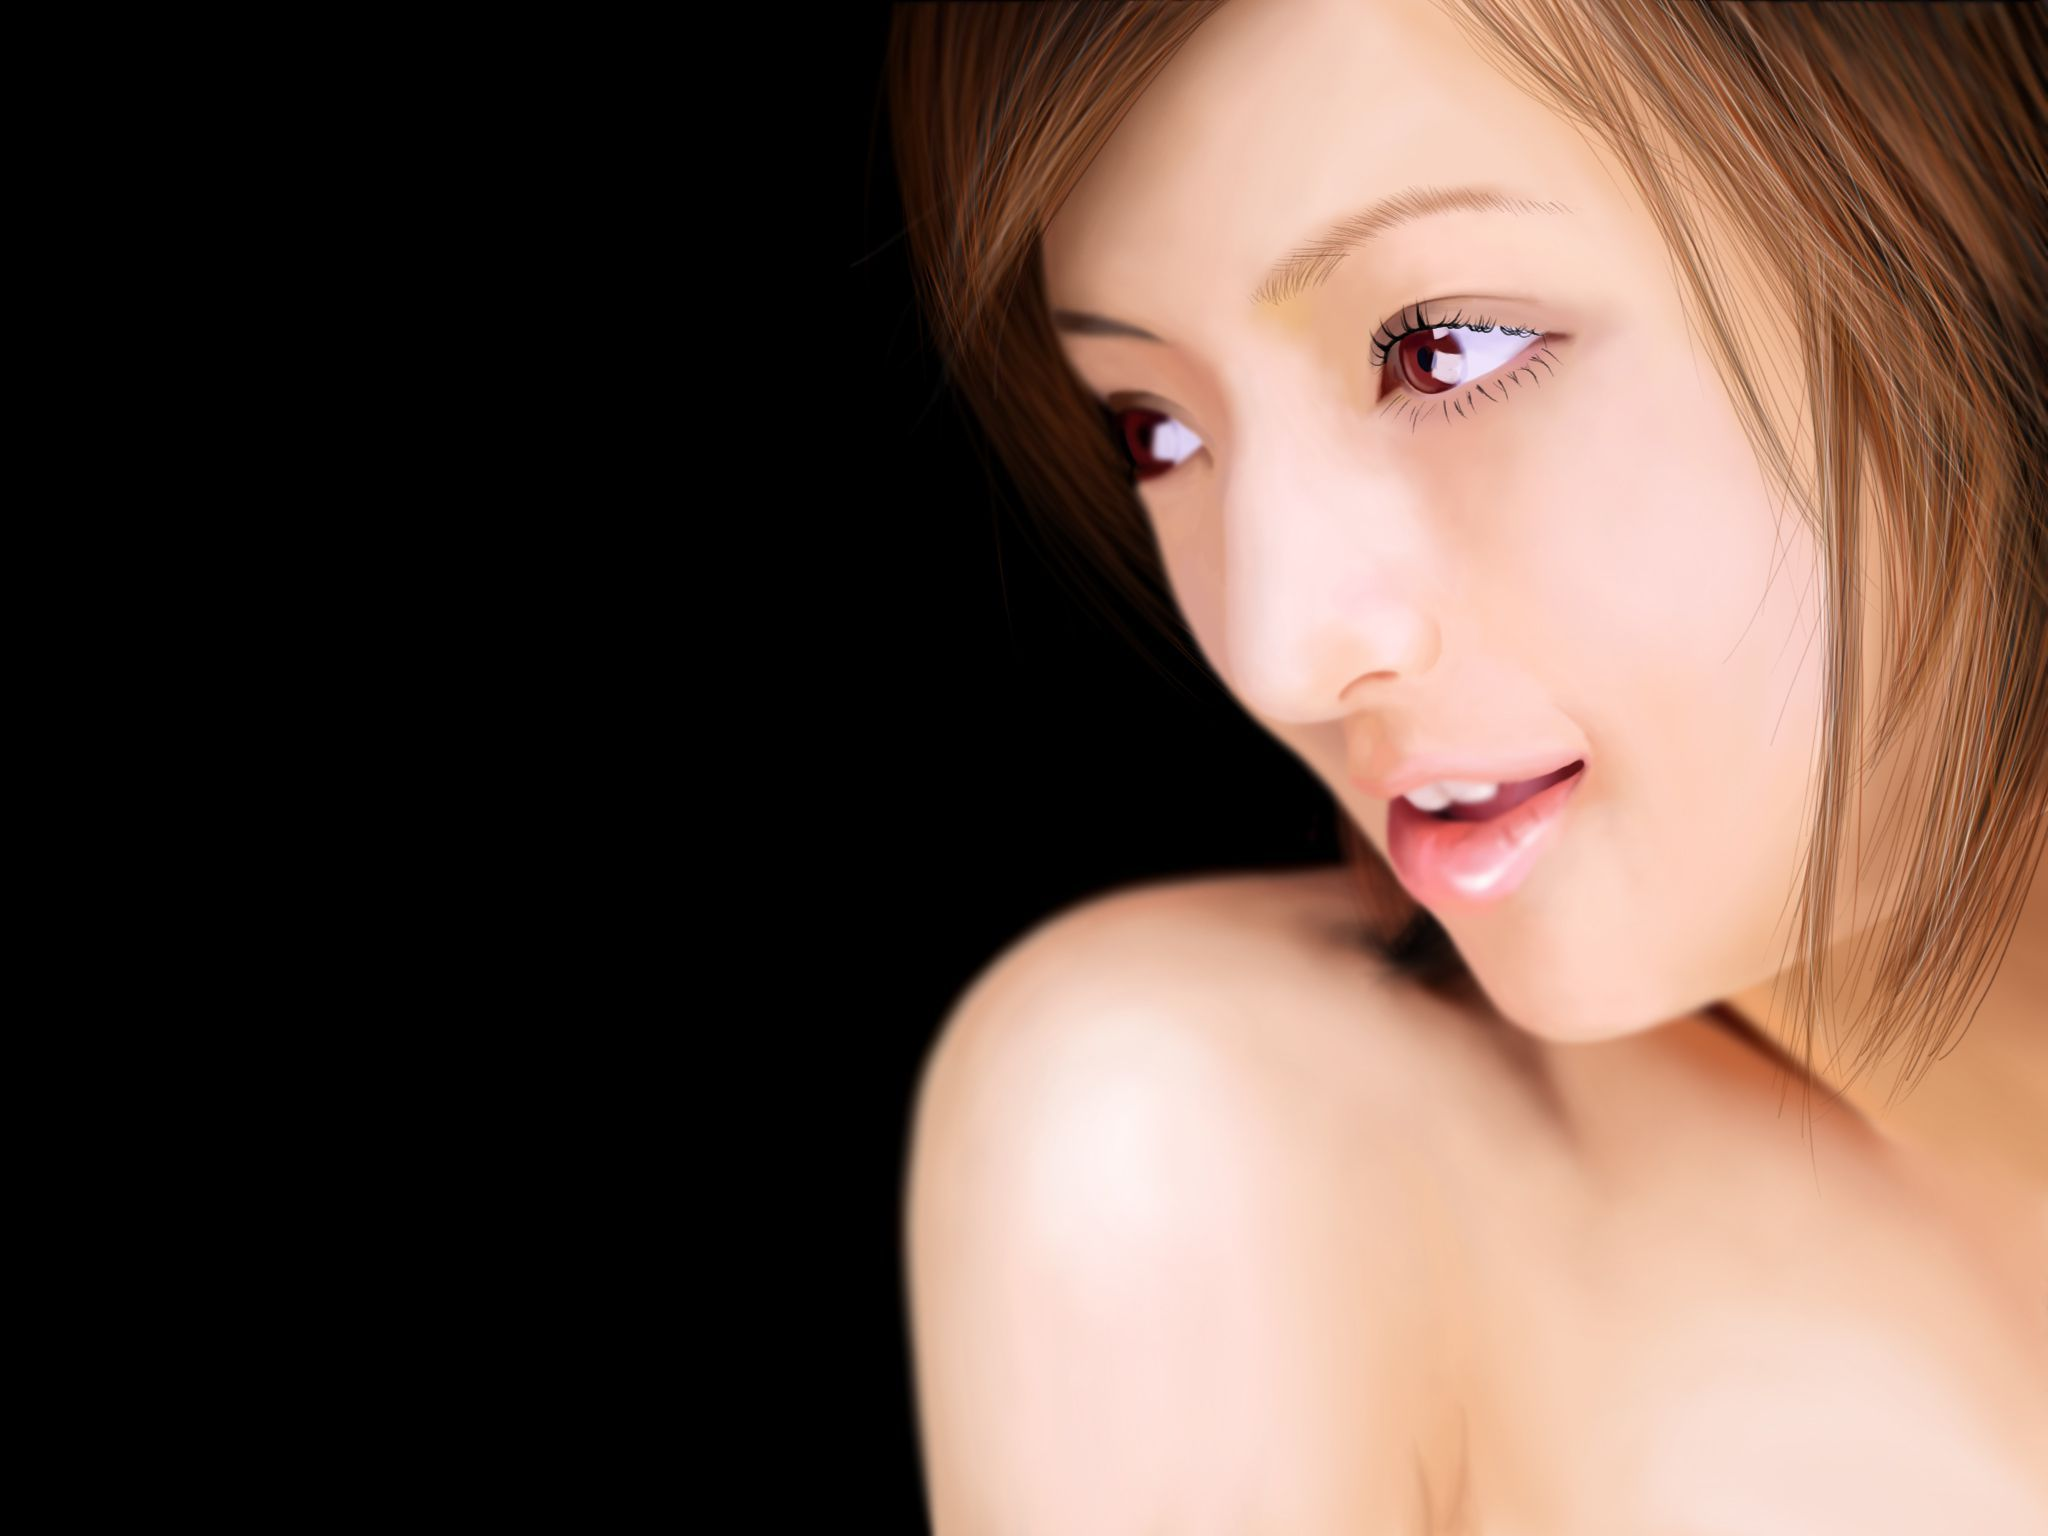 Ayumi Hamasaki High Definition Wallpapers